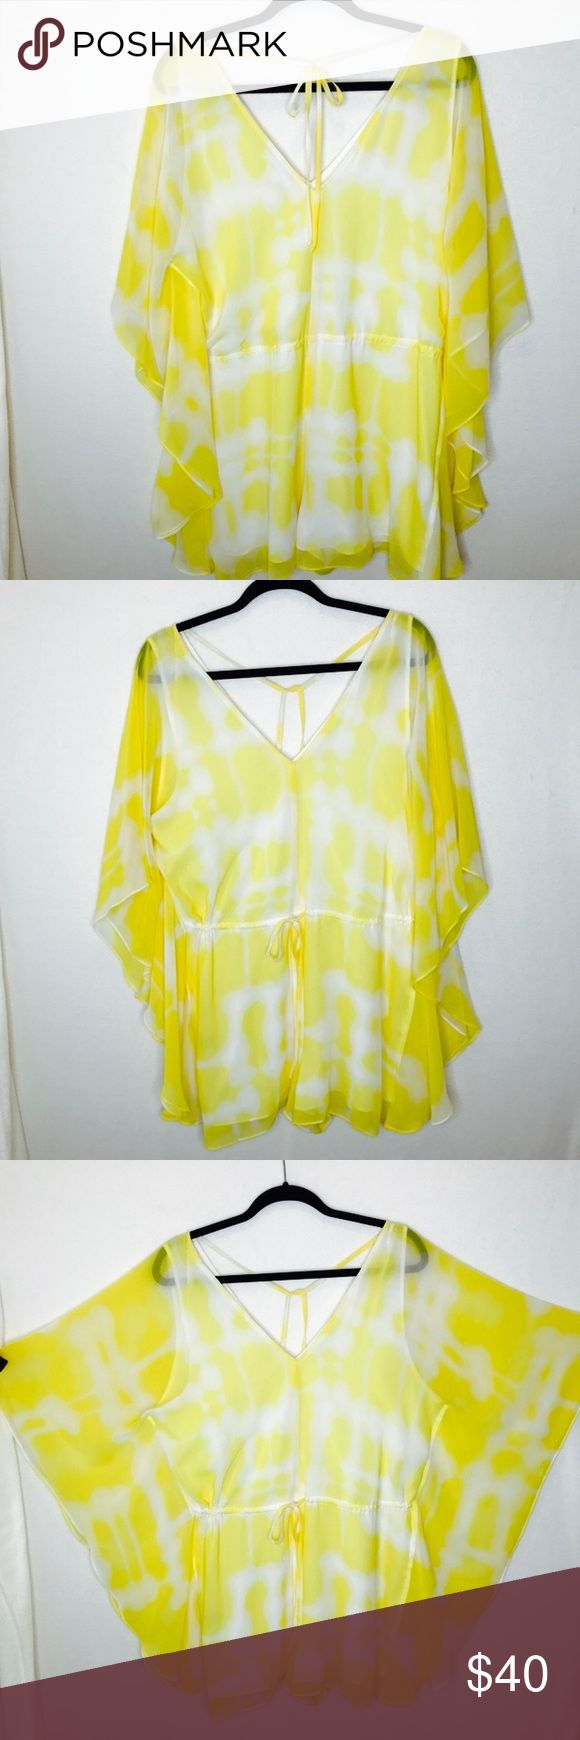 BCBG romper BCBG generation yellow and white ikat romper with butterfly sleeves and tie waist for cinching BCBGeneration Shorts